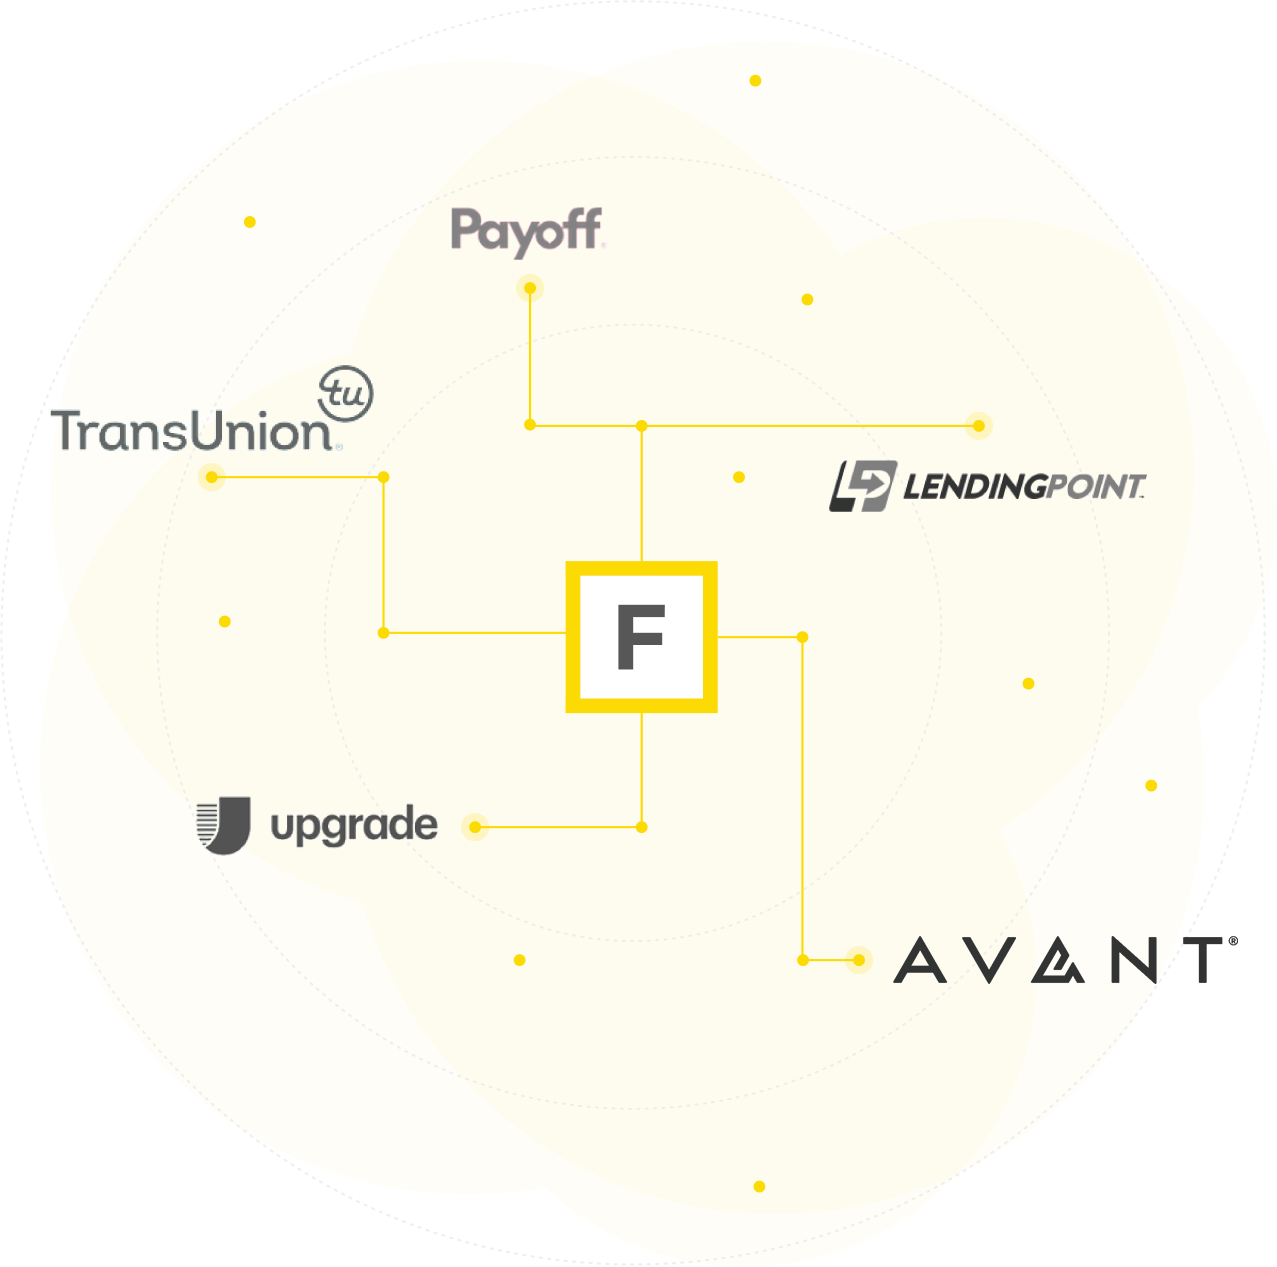 Example Lenders in Our Network